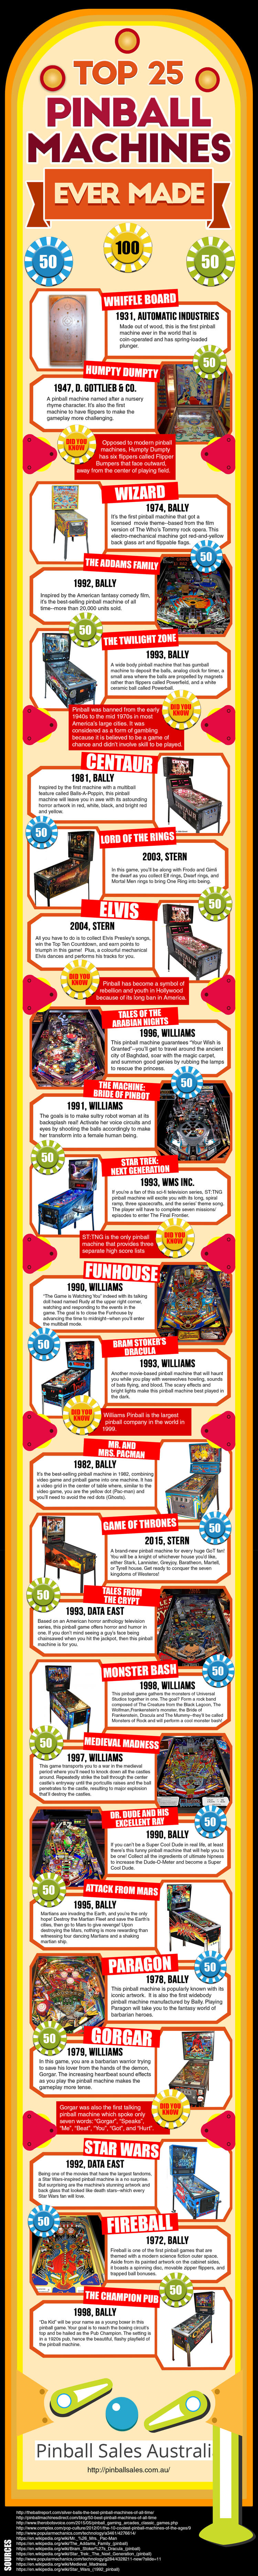 Top 25 Pinball Machines Ever Made